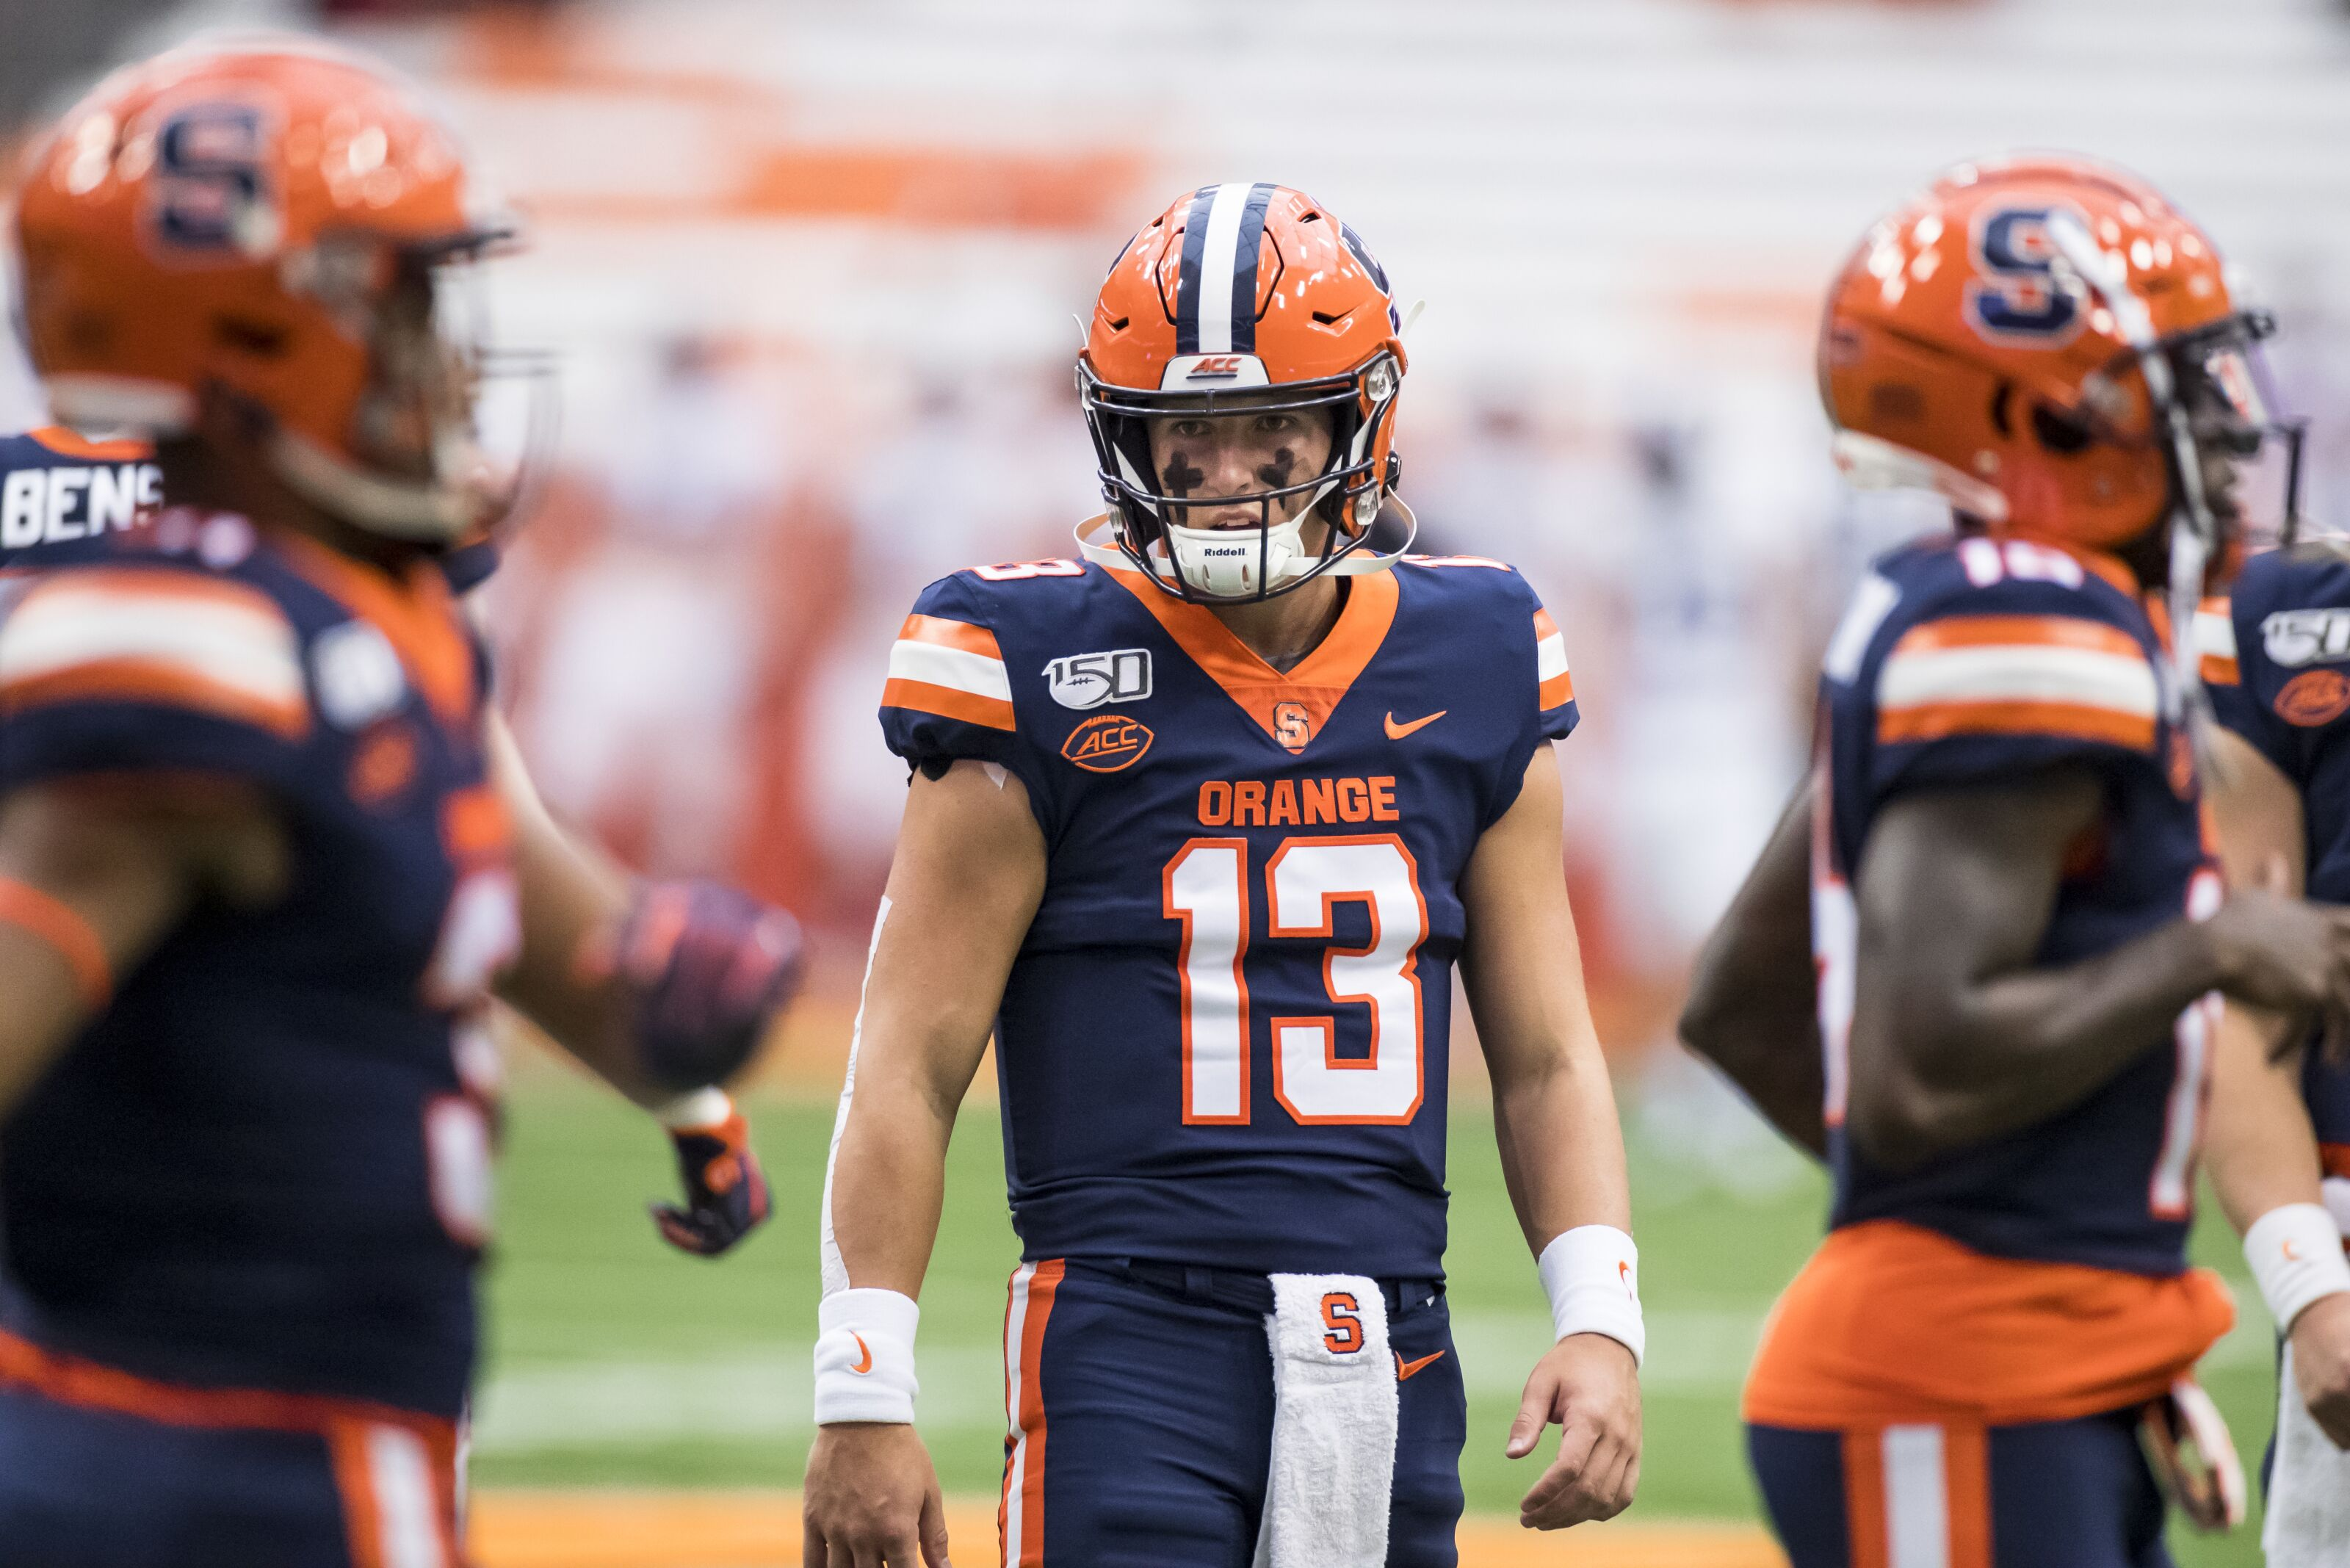 Syracuse Football: 3 bold predictions vs. NC State in Week 7